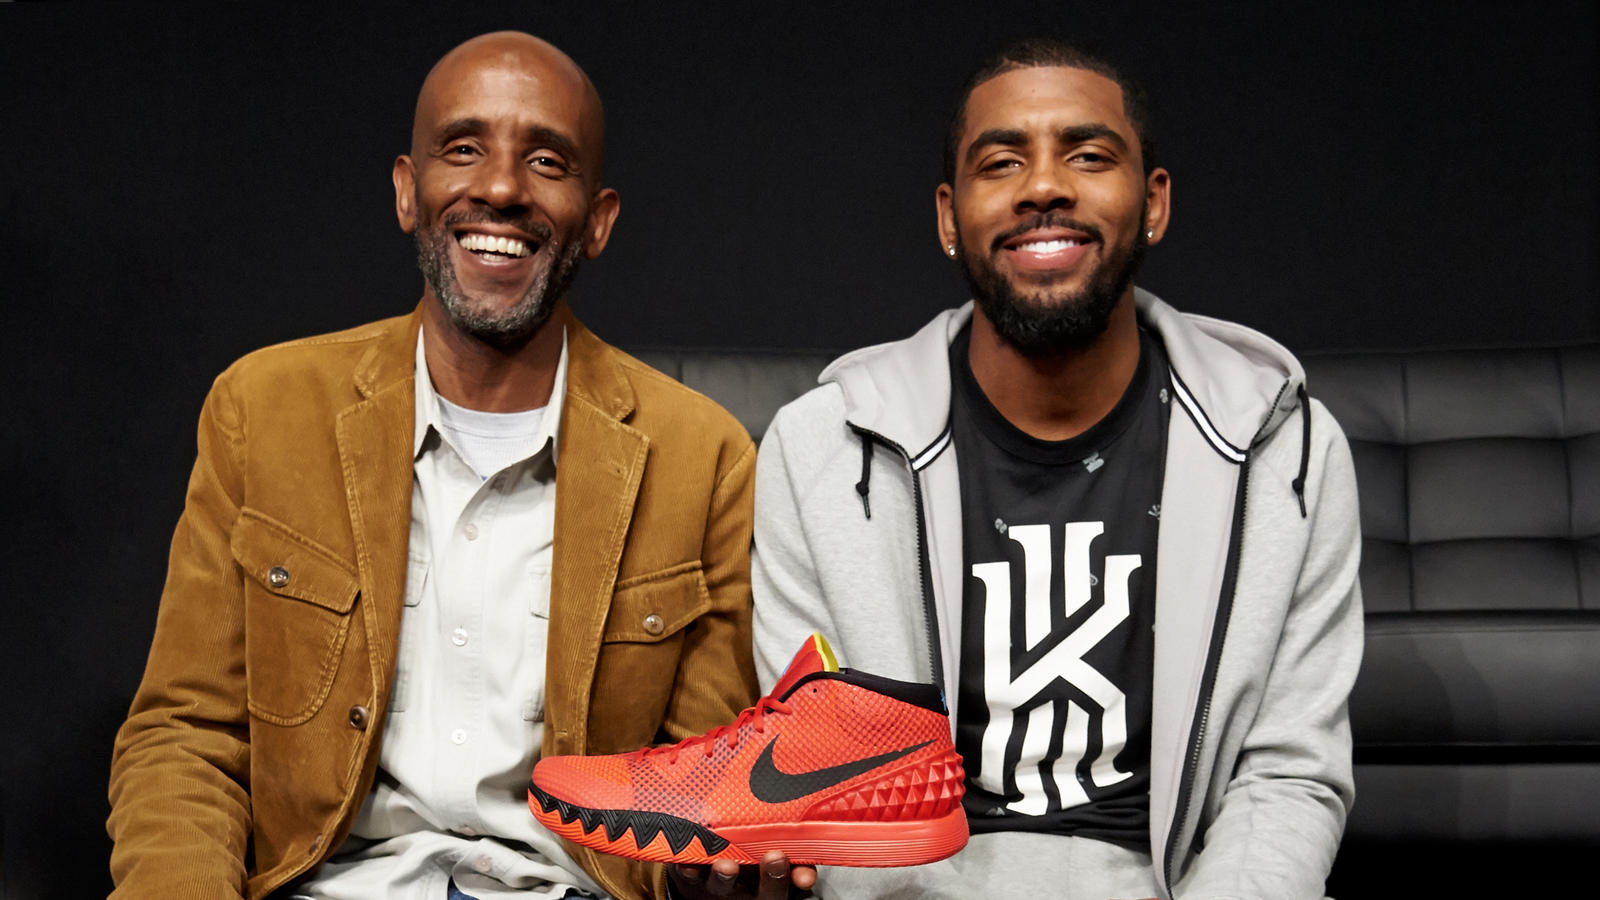 fd4a5209b931 10 things you don t know about Kyrie Irving - Nike News